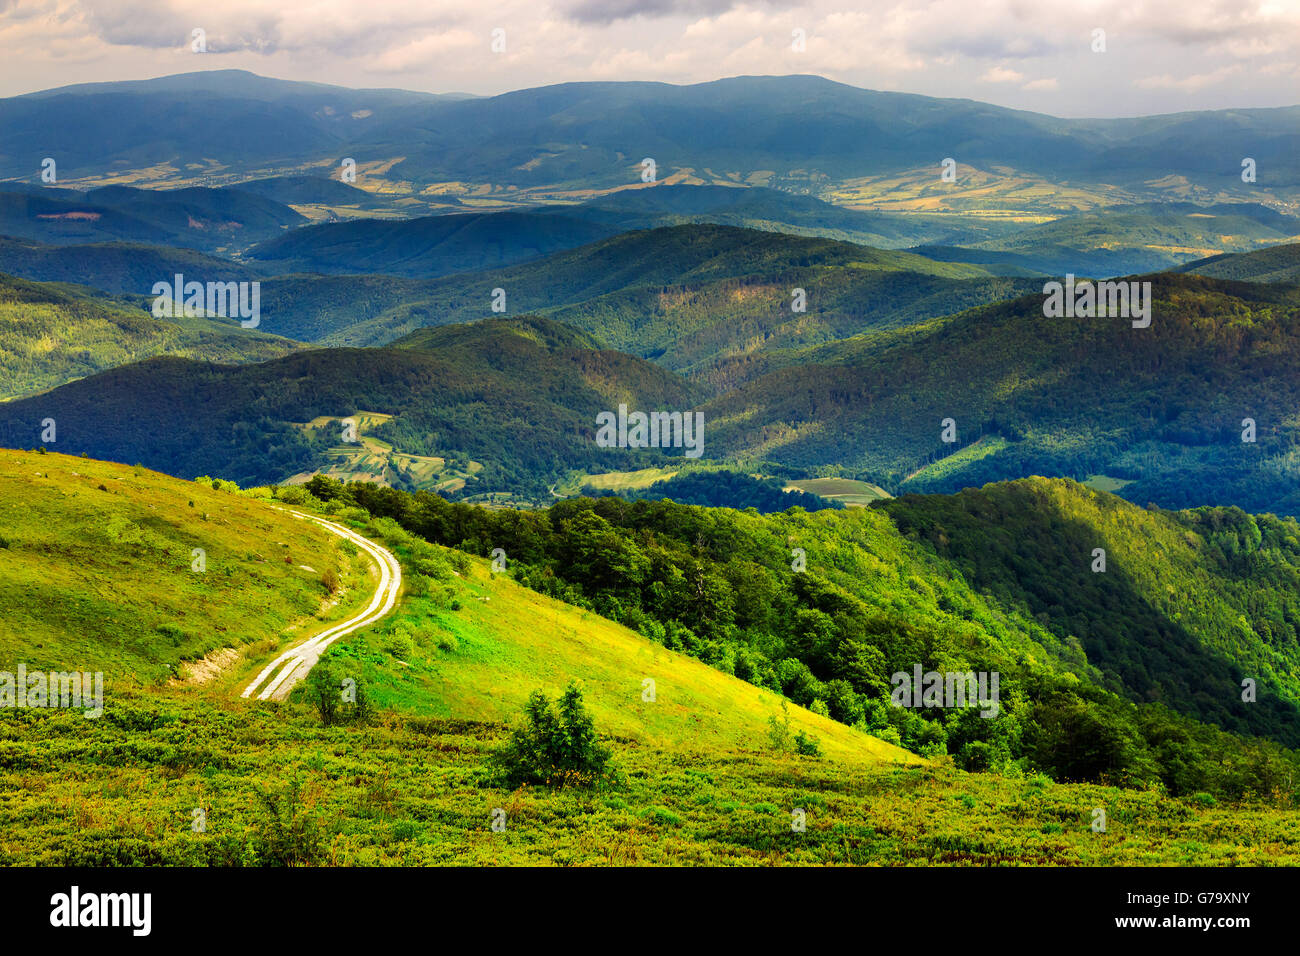 mountain range summer landscape. valley with stones and road on the hillside. forest on the mountain under the beam - Stock Image